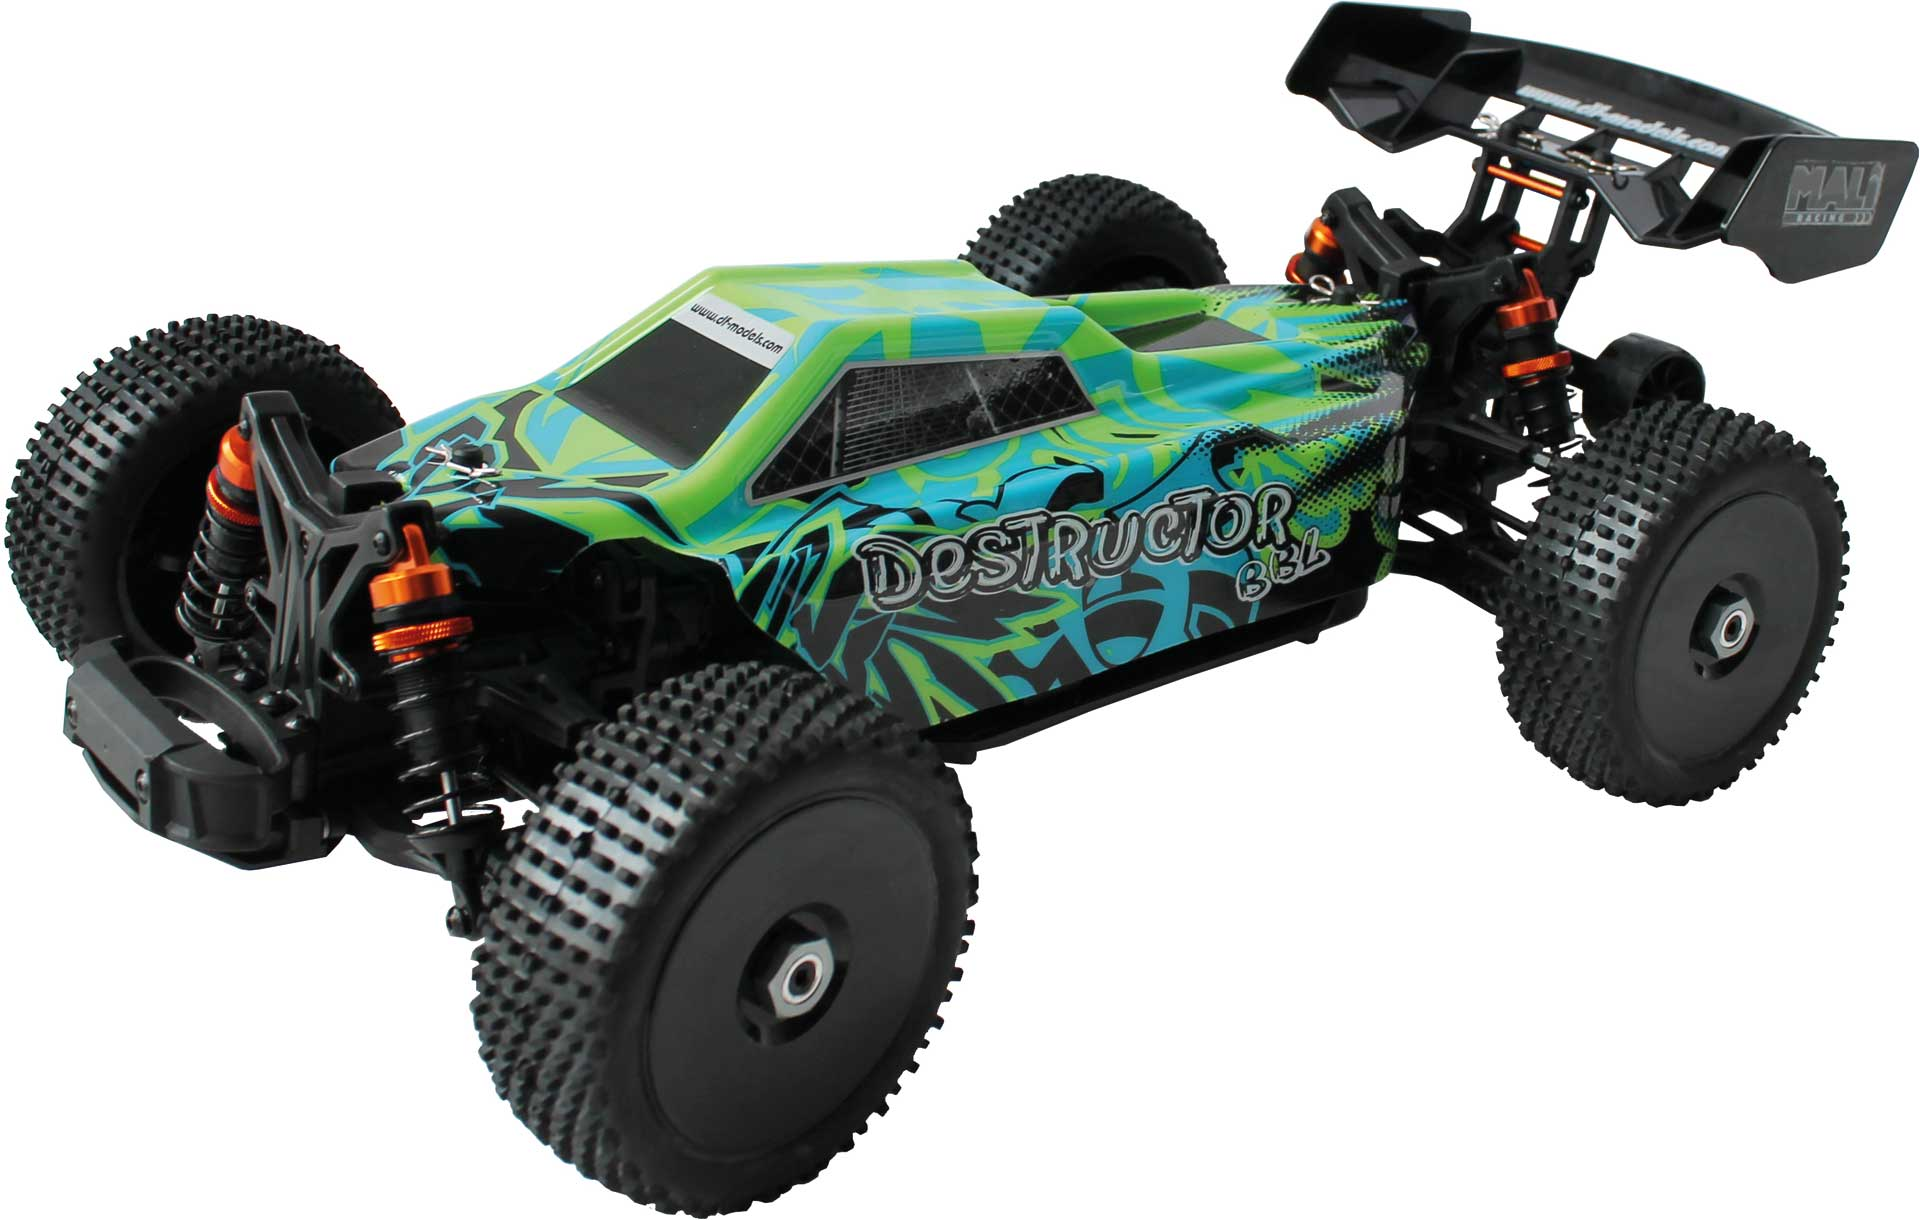 DRIVE & FLY MODELS Destructor BBL - 1:8 Buggy brushless